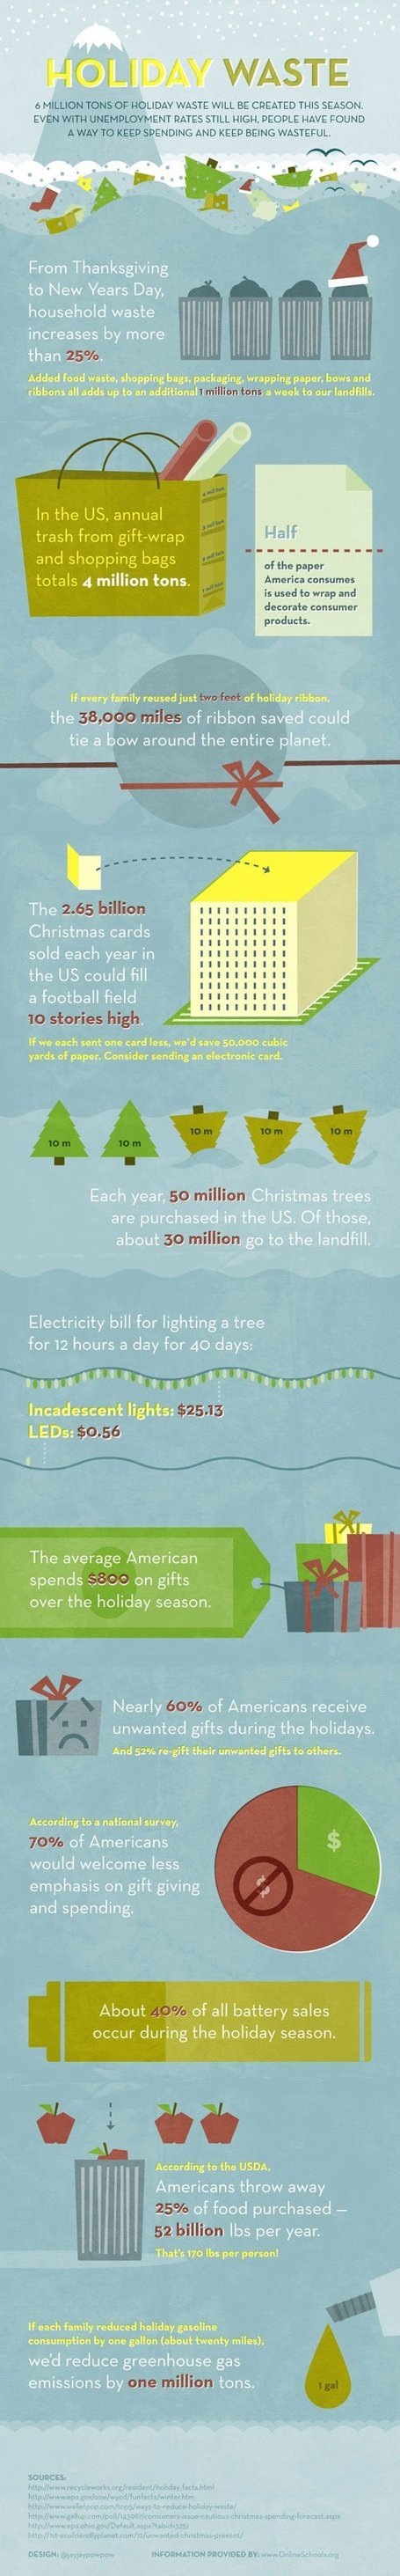 Top 10 Ways to Go Green this Holiday Season | Teaching in the XXI century | Scoop.it